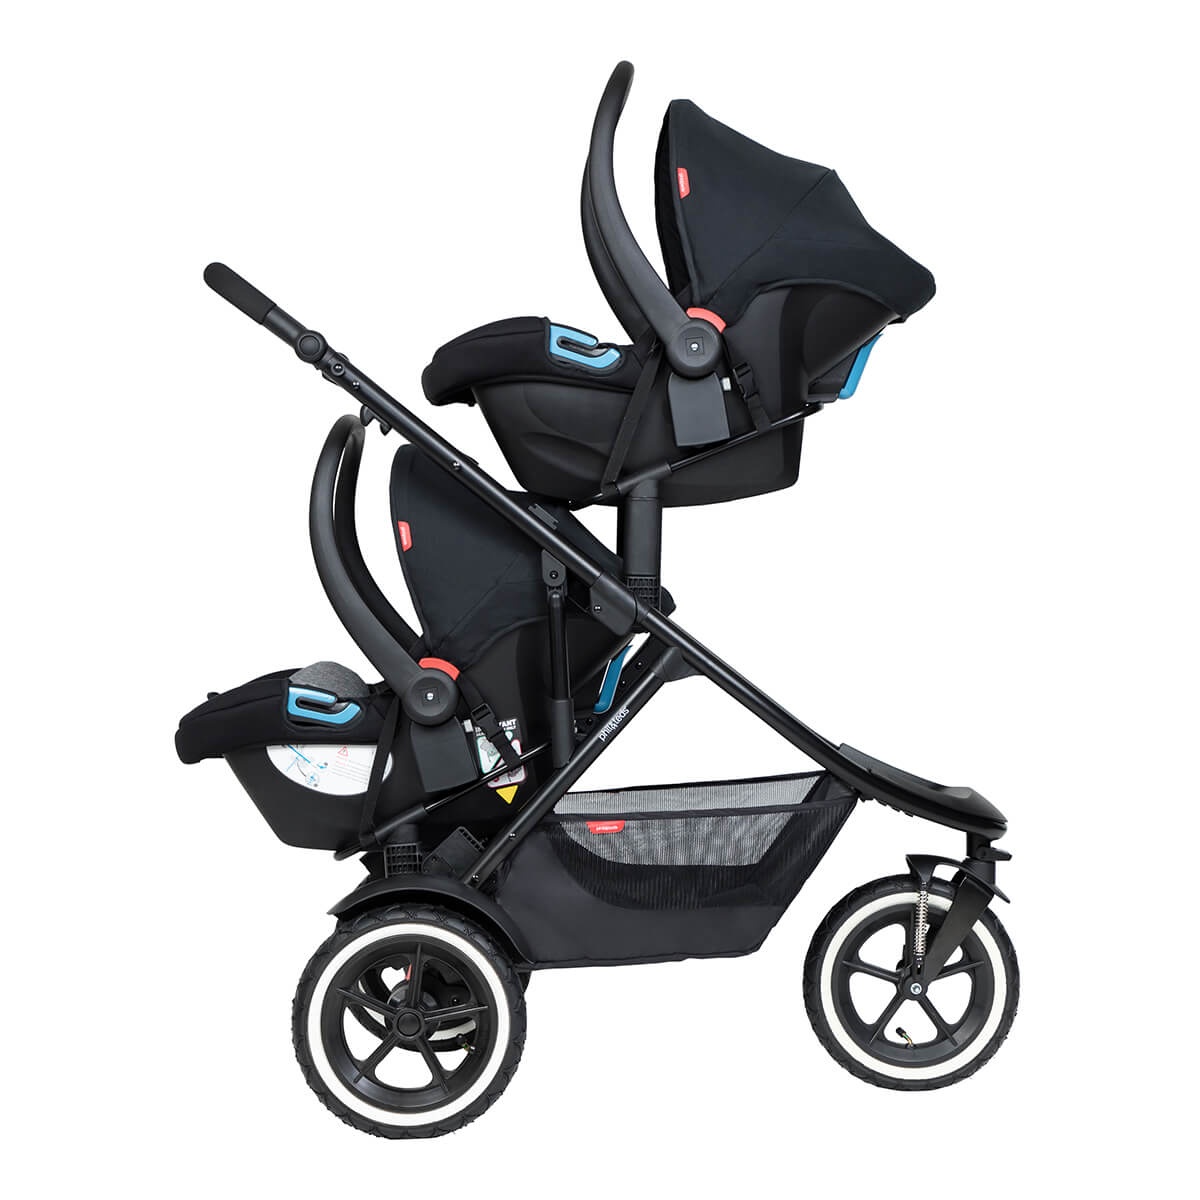 https://cdn.accentuate.io/4513462550624/19440099983544/philteds-sport-buggy-with-double-alpha-travel-system-v1626486531058.jpg?1200x1200